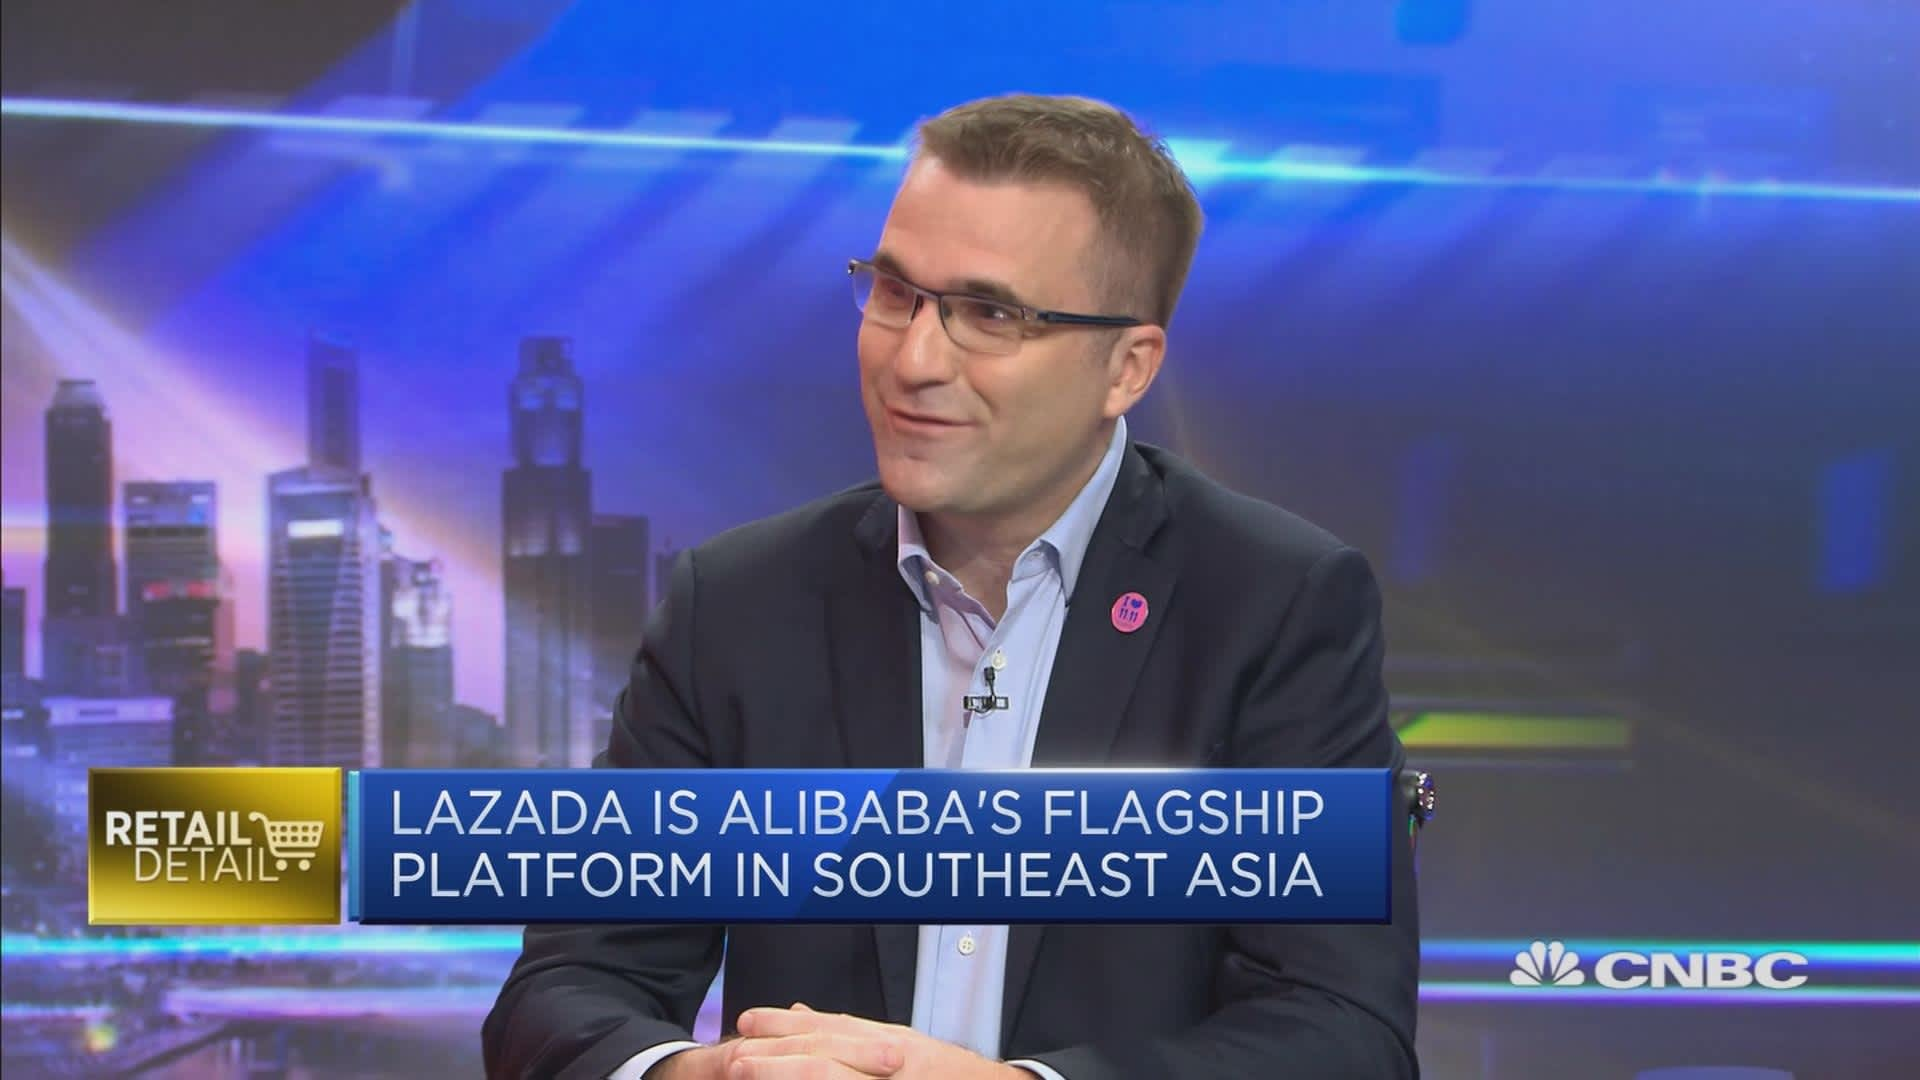 Singles Day was 'amazing' for Lazada, says CEO